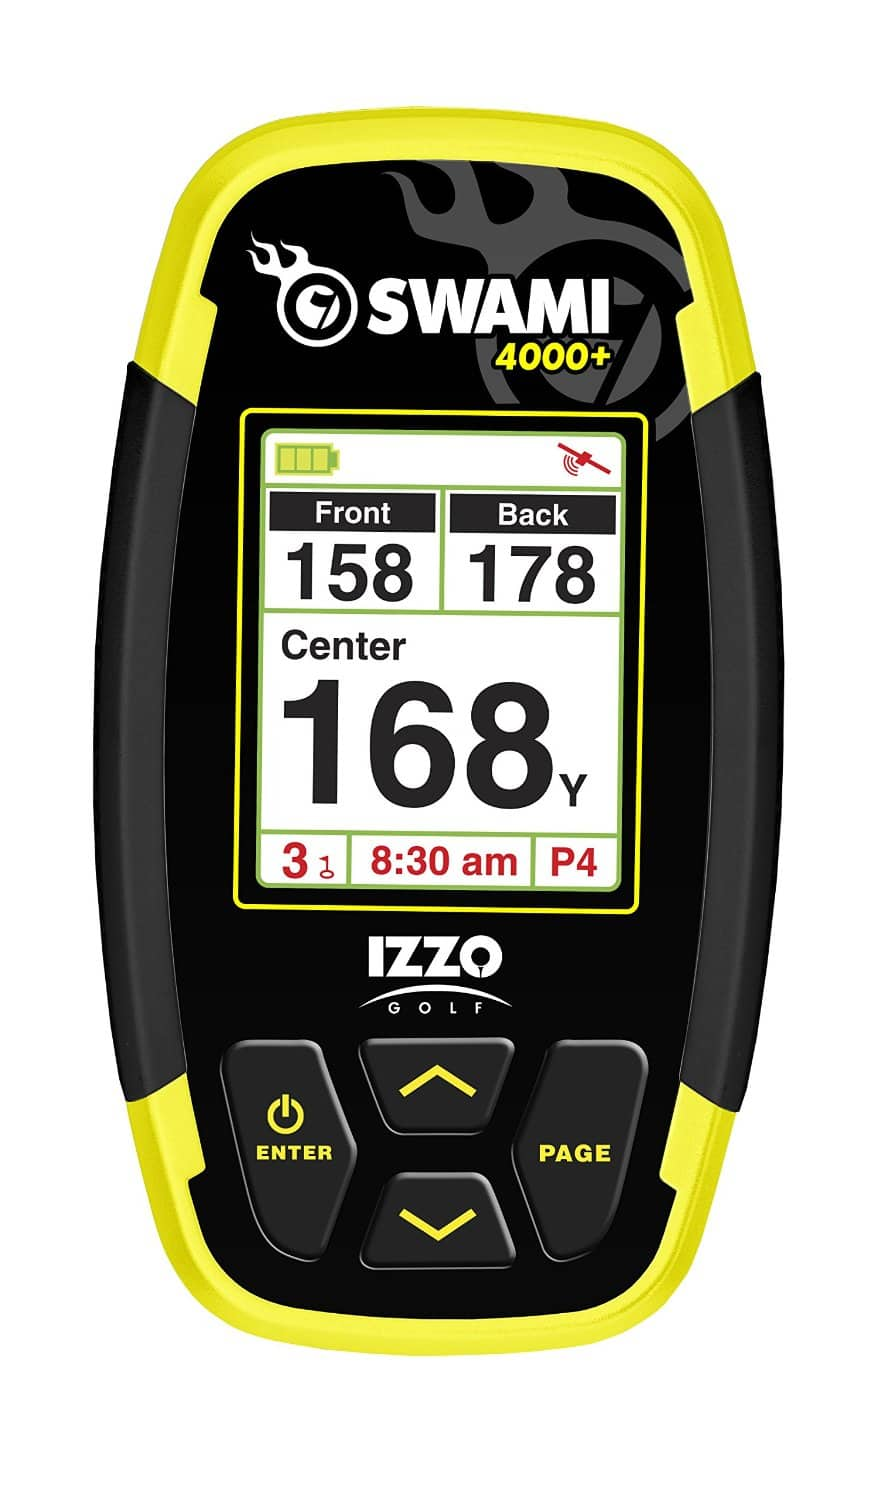 IZZO Swami 4000 Plus Golf GPS (2015) for $89.99 with free shipping & more